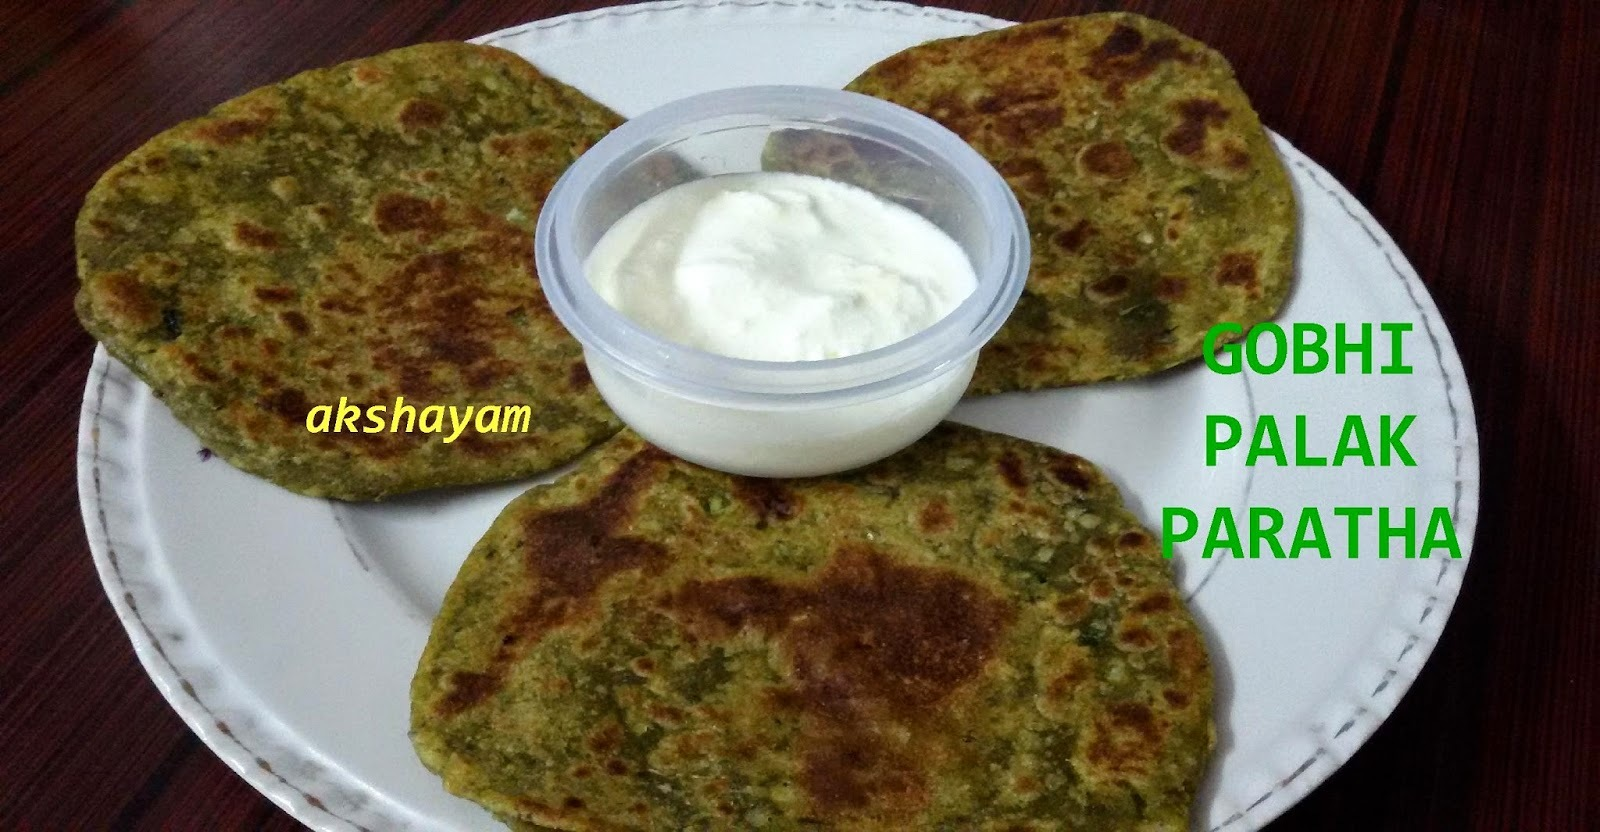 Broccoli-Palak Paratha